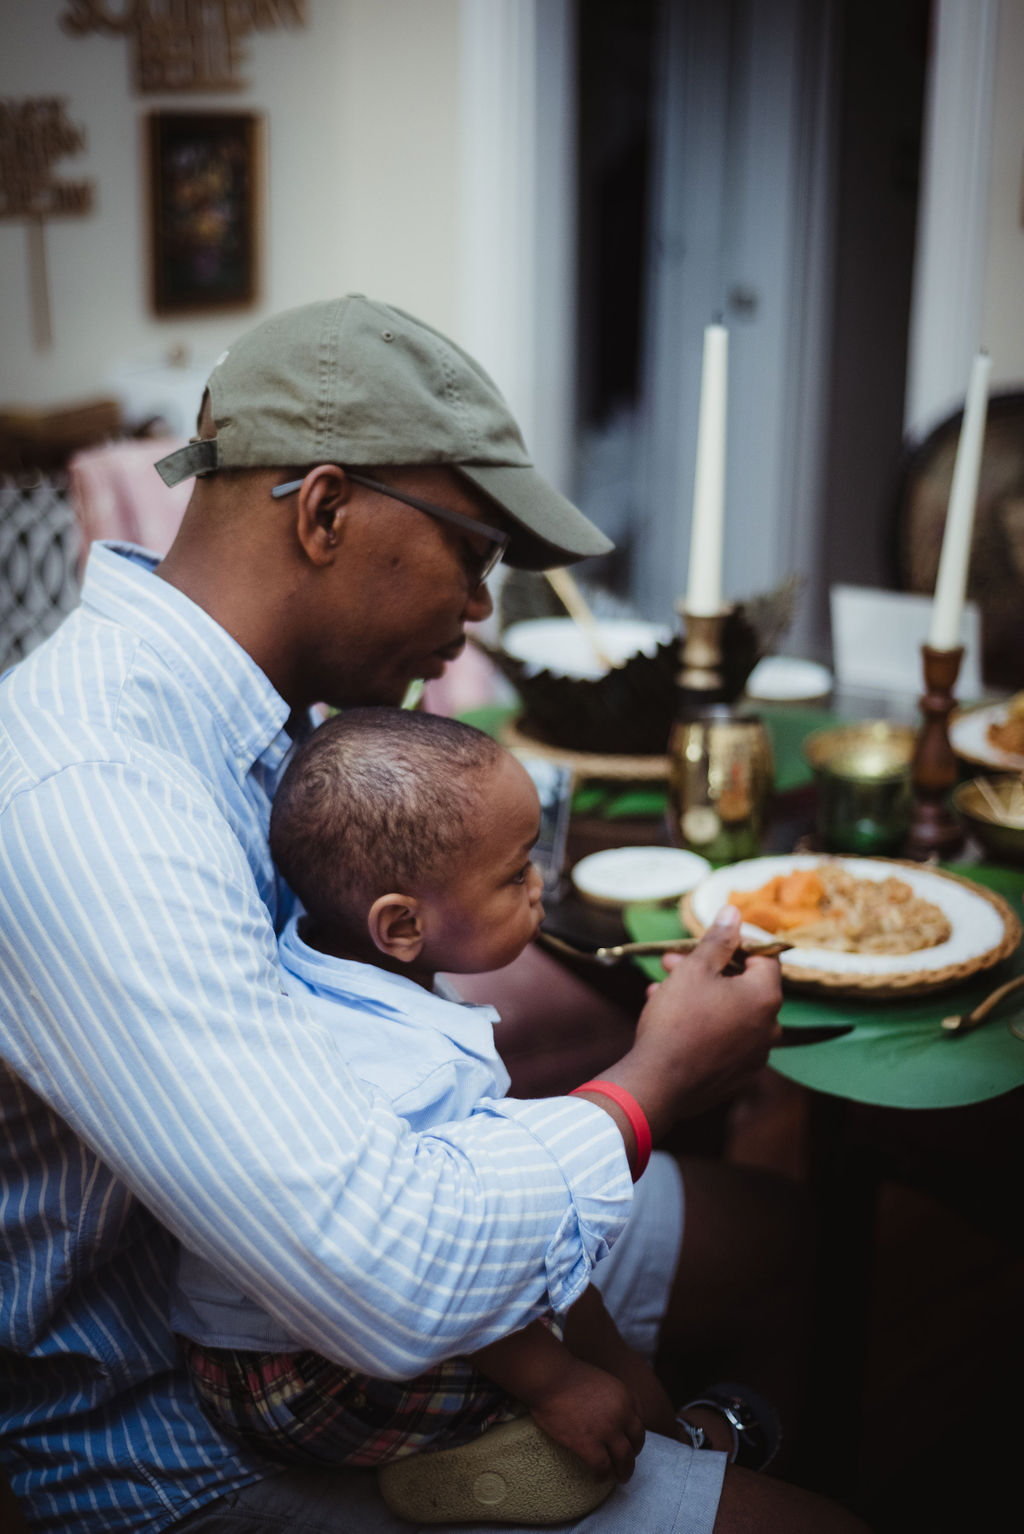 A traditional Juneteenth meal shared with family.